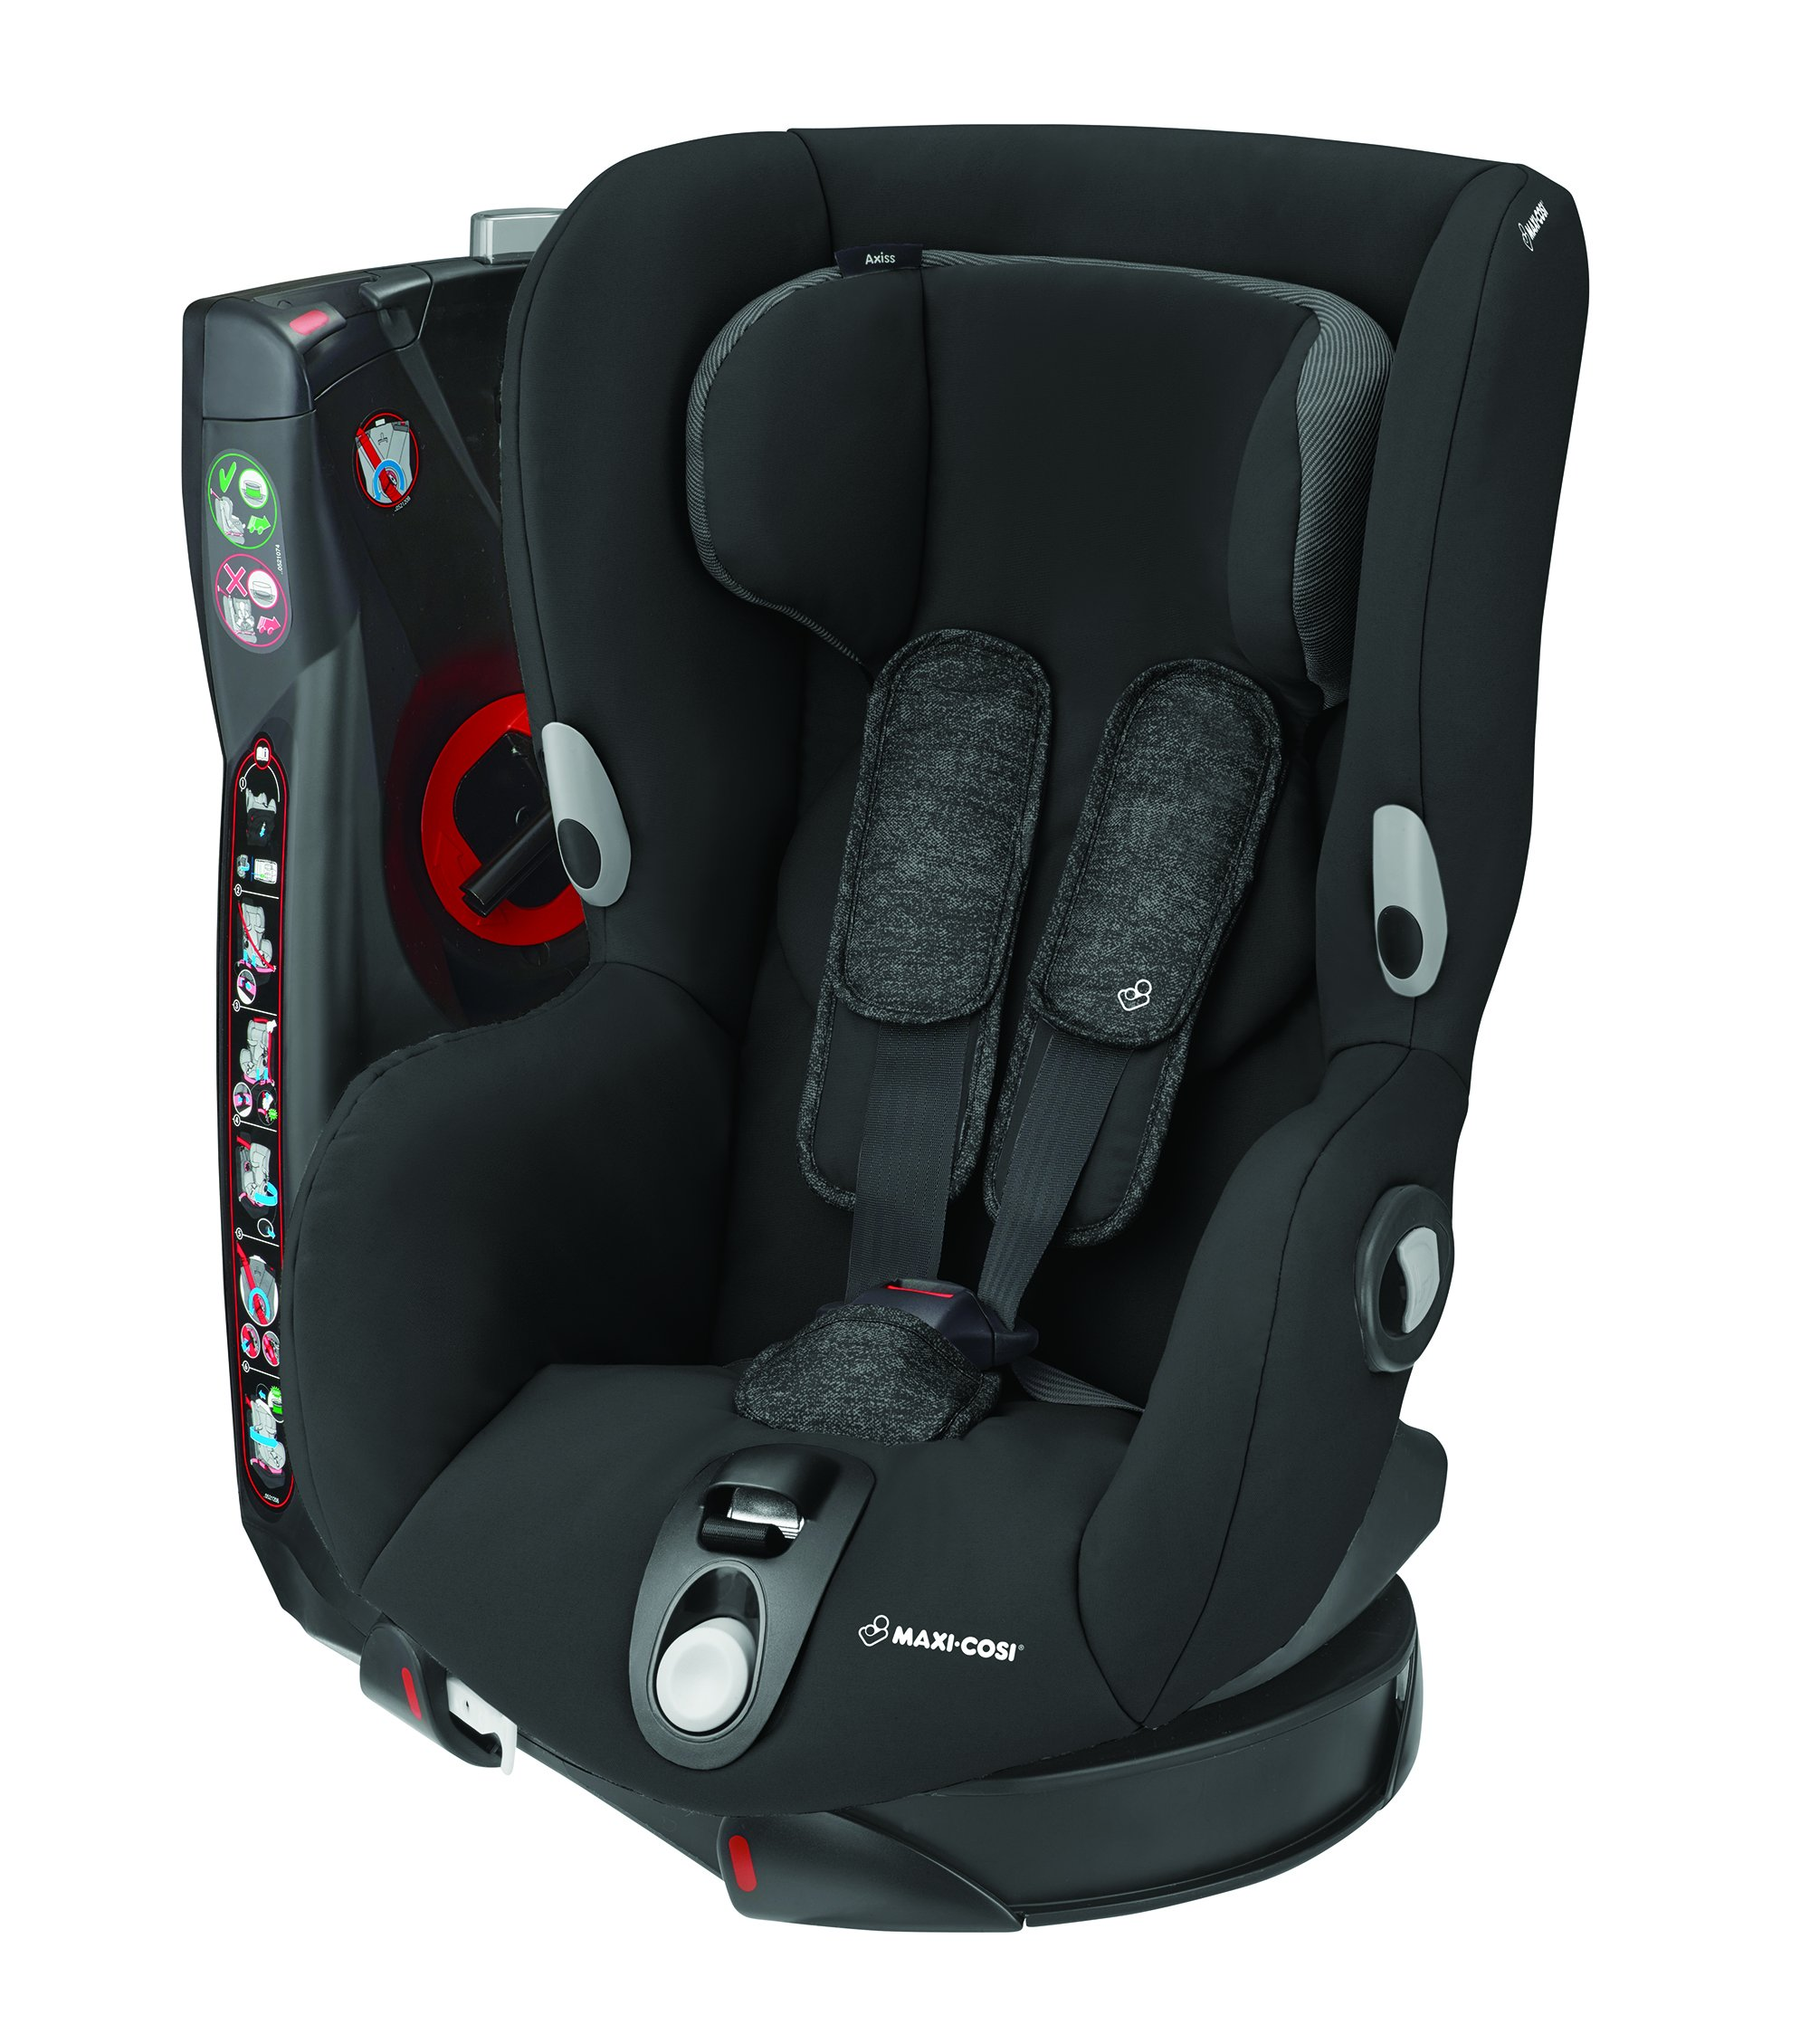 Maxi-Cosi Axiss Toddler Car Seat Group 1, Swivel Car Seat, 9 Months-4 Years, Nomad Black, 9-18 kg Maxi-Cosi Car seat swivels 90° degrees allows for front-on access to get your toddler in and out of the car more easily 8 comfortable recline positions. Machine washable cover at 30° Install using the car's seat belt and the integrated belt tensioner ensures a solid fit 1